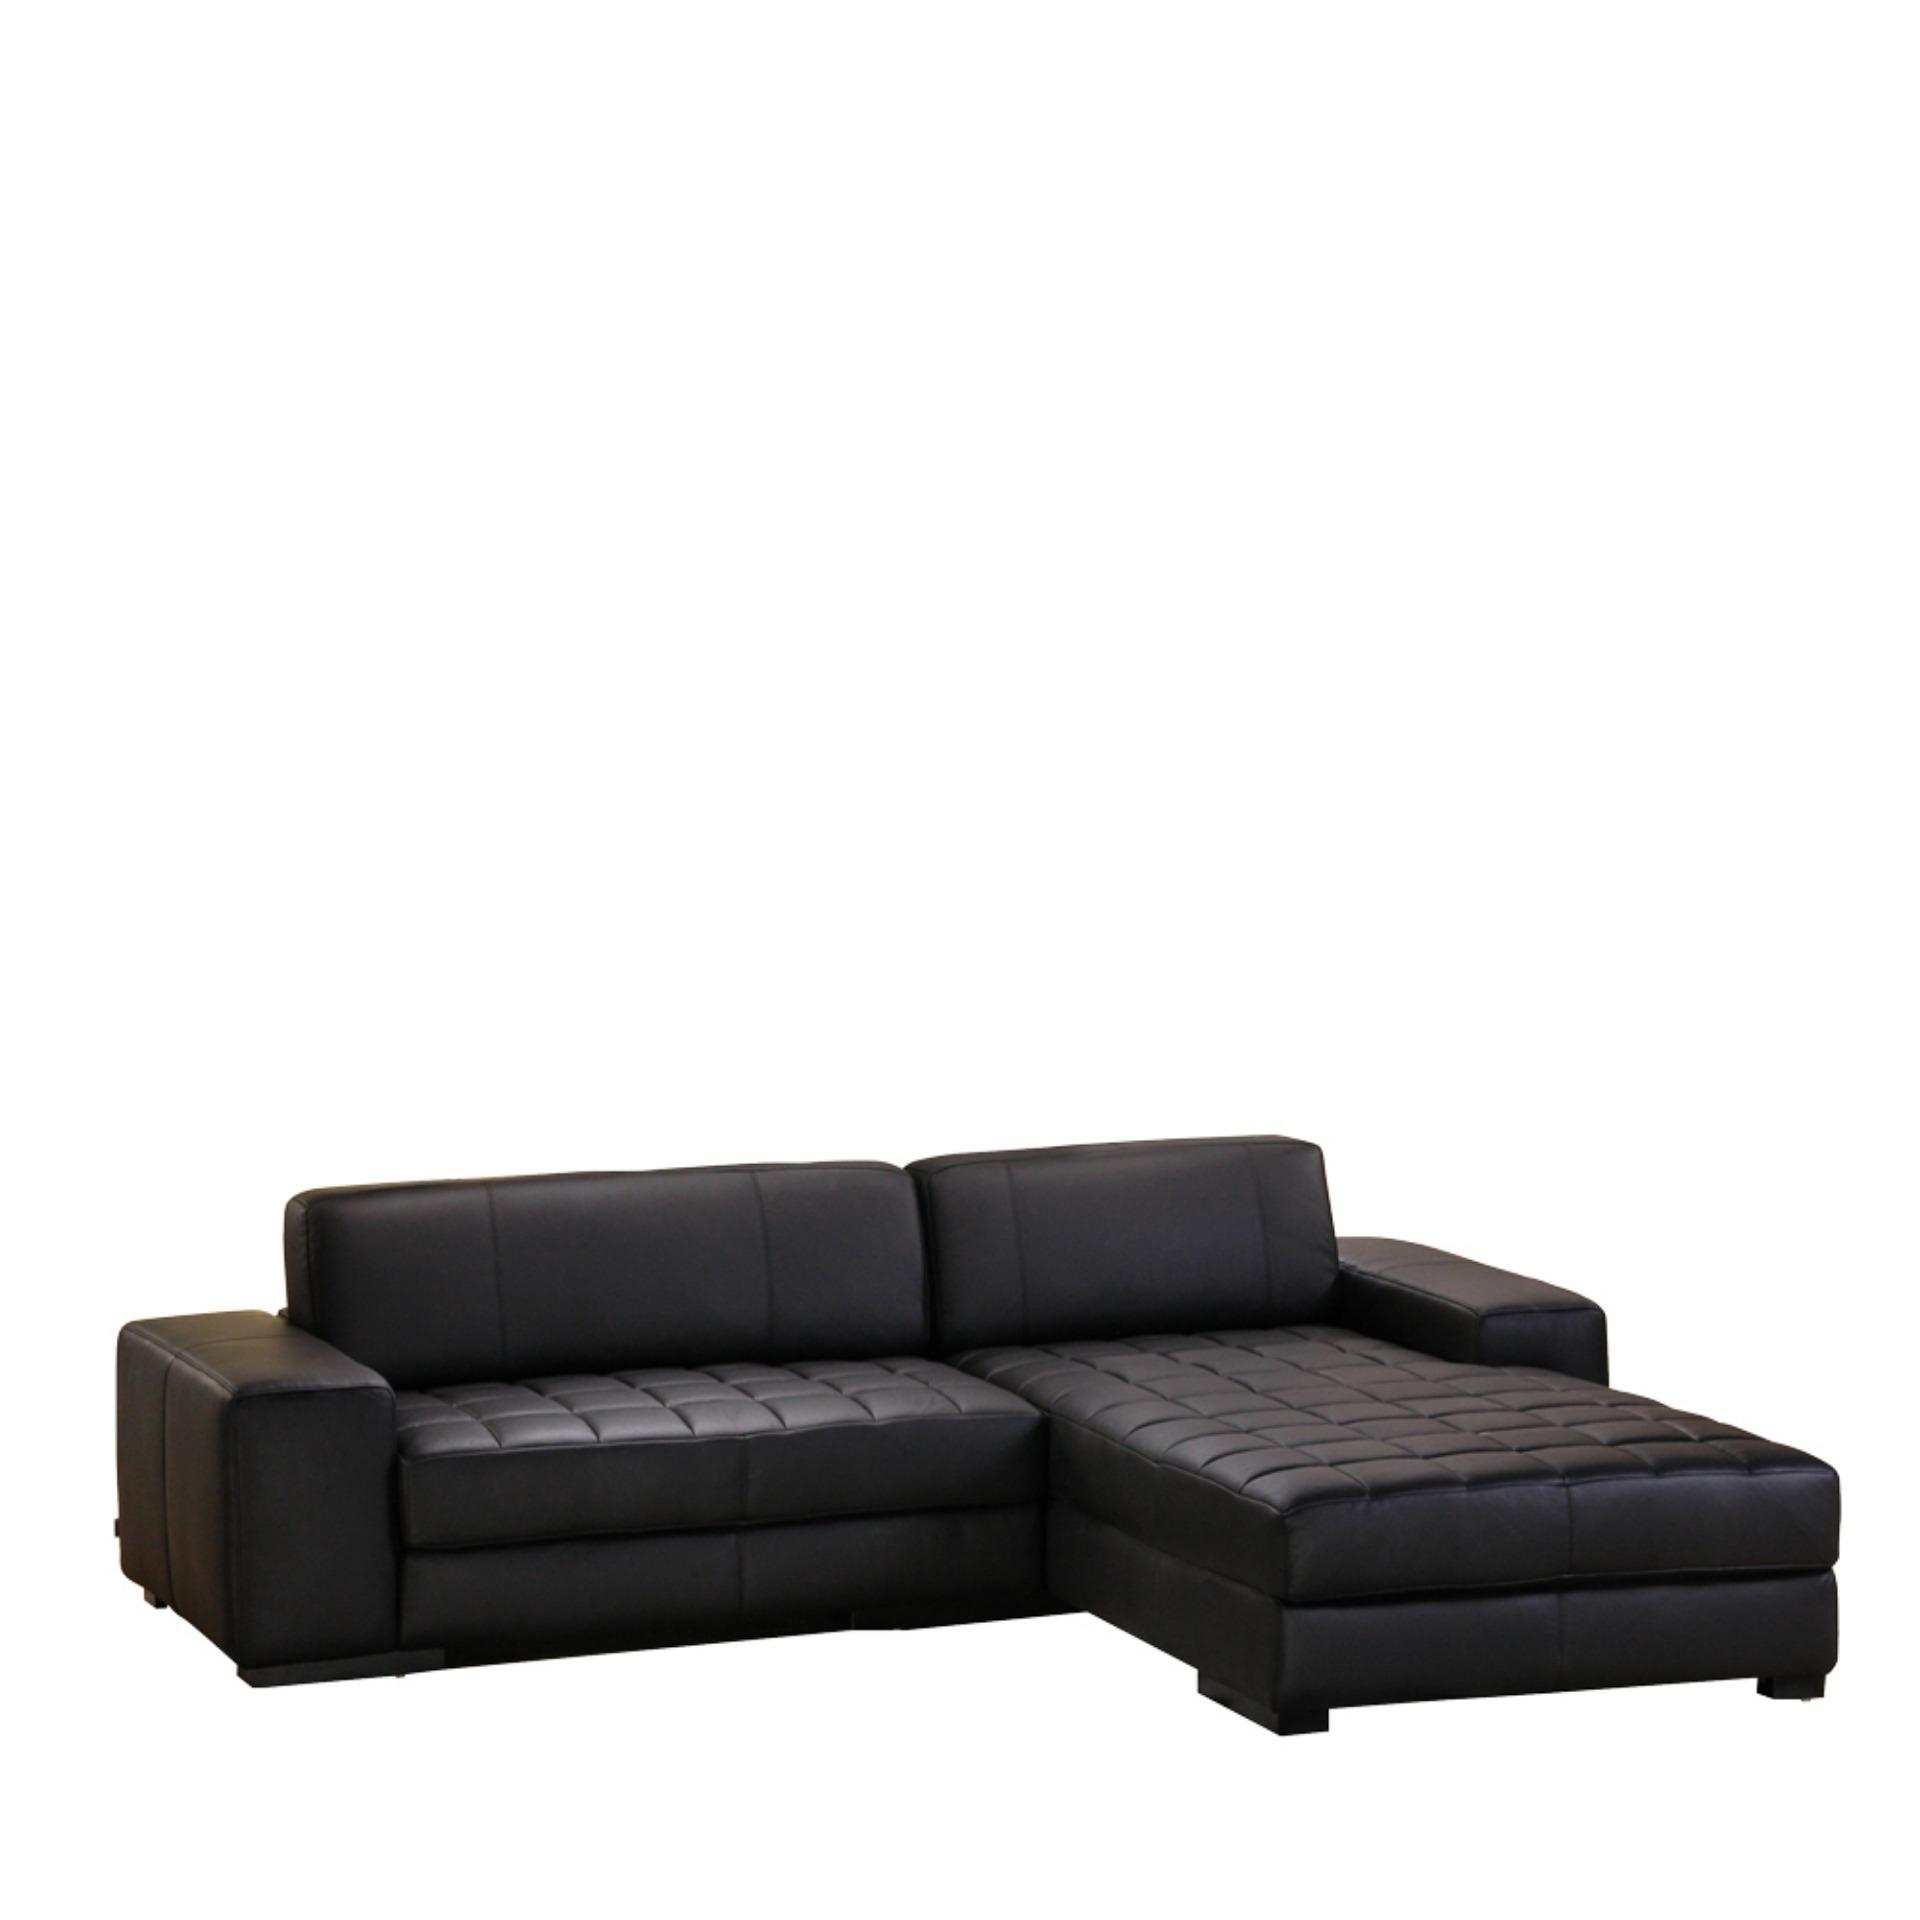 Univonna Alex L shape sofa * Color choice * Free delivery and installation